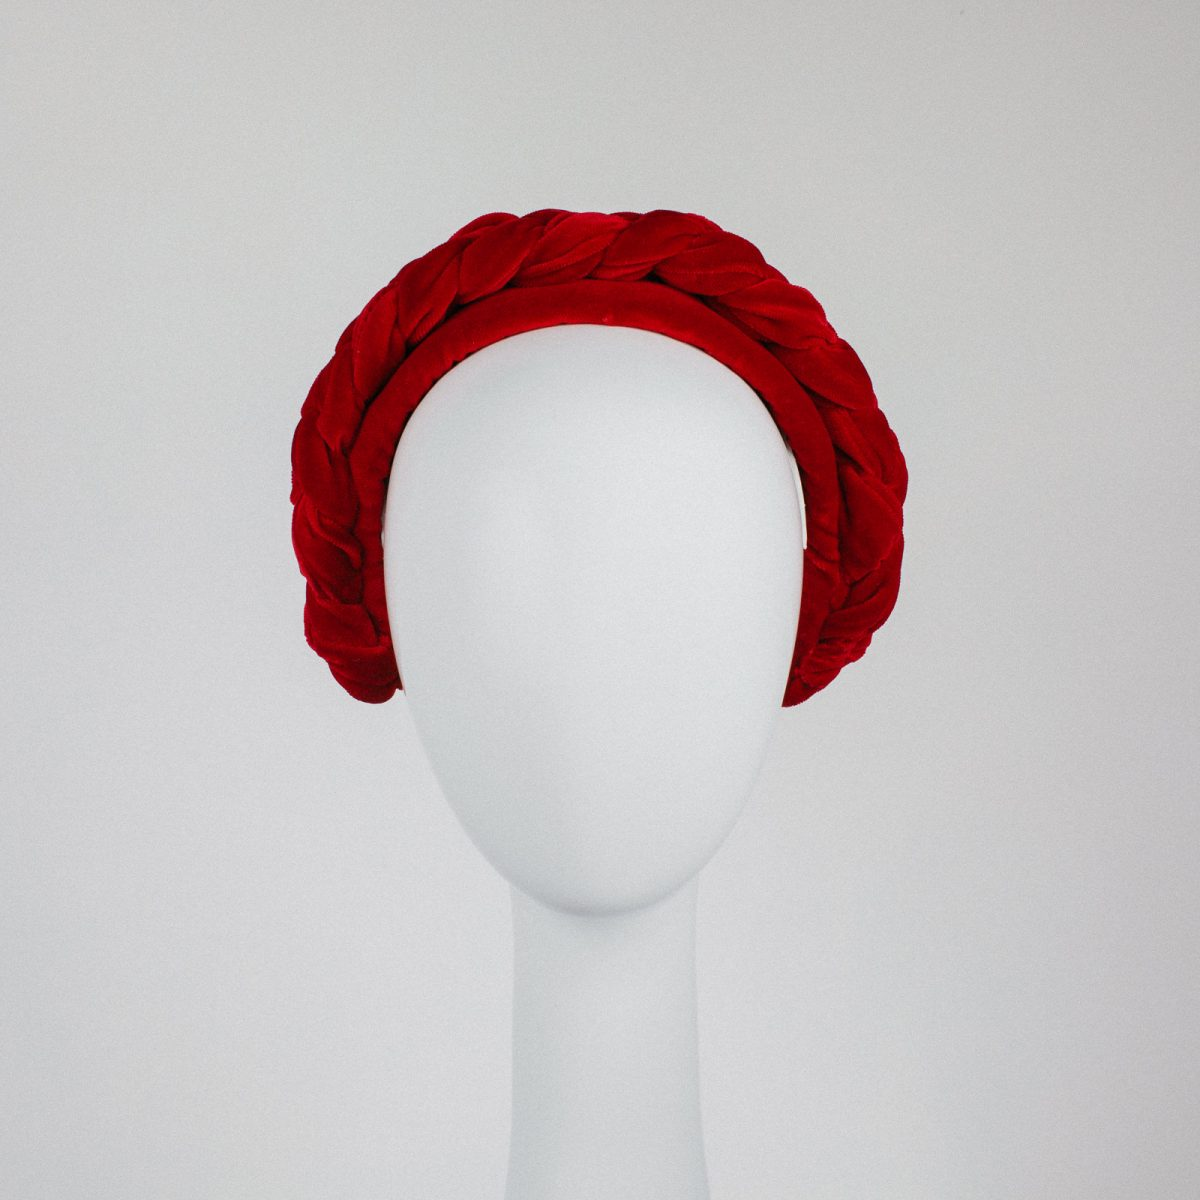 red velvet headband - unique designer headpiece - luxurious material